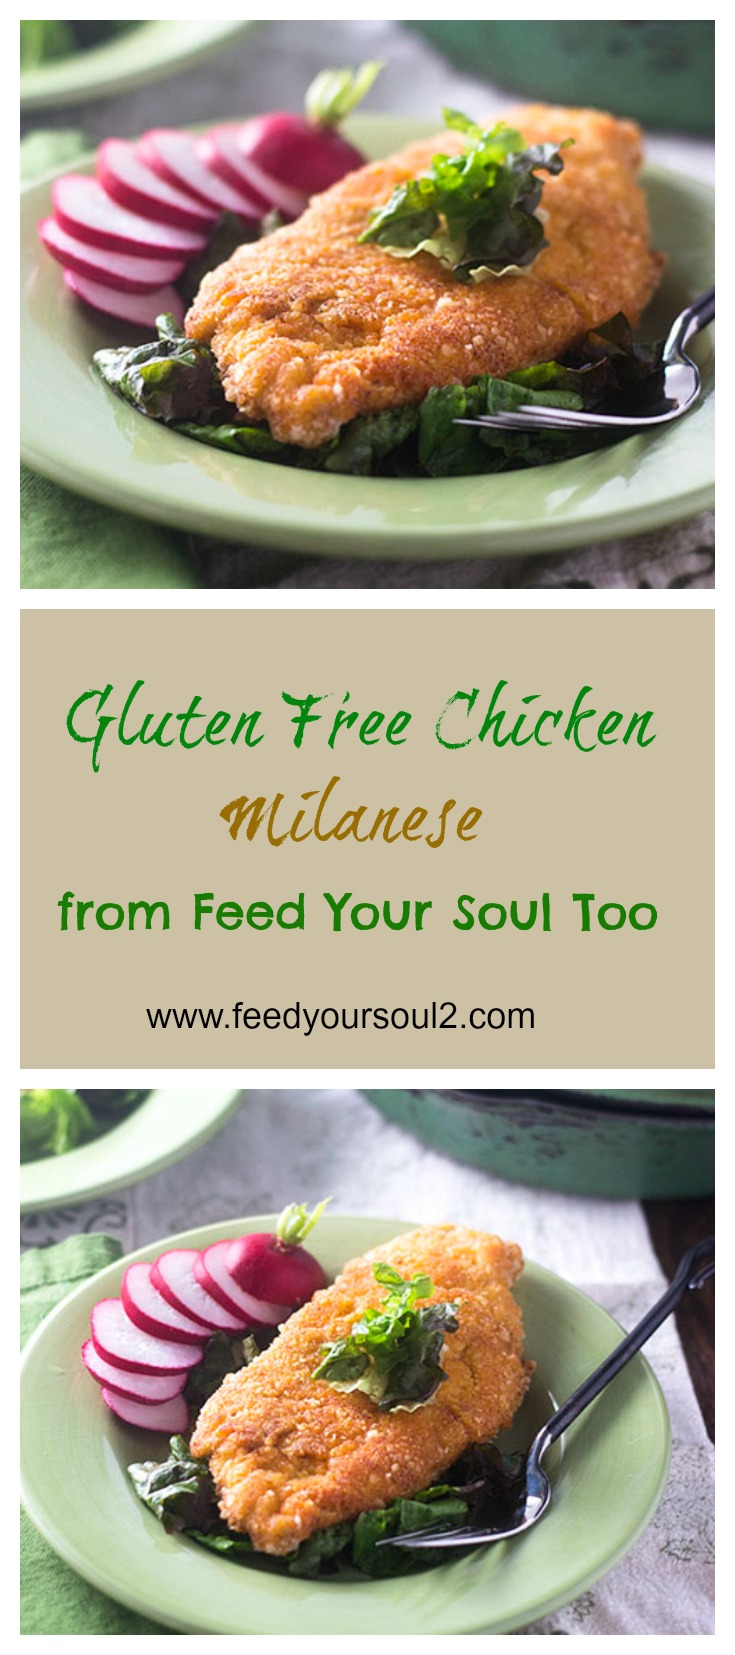 Gluten Free Chicken Milanese #glutenfree #Italianfood #chicken | feedyoursoul2.com